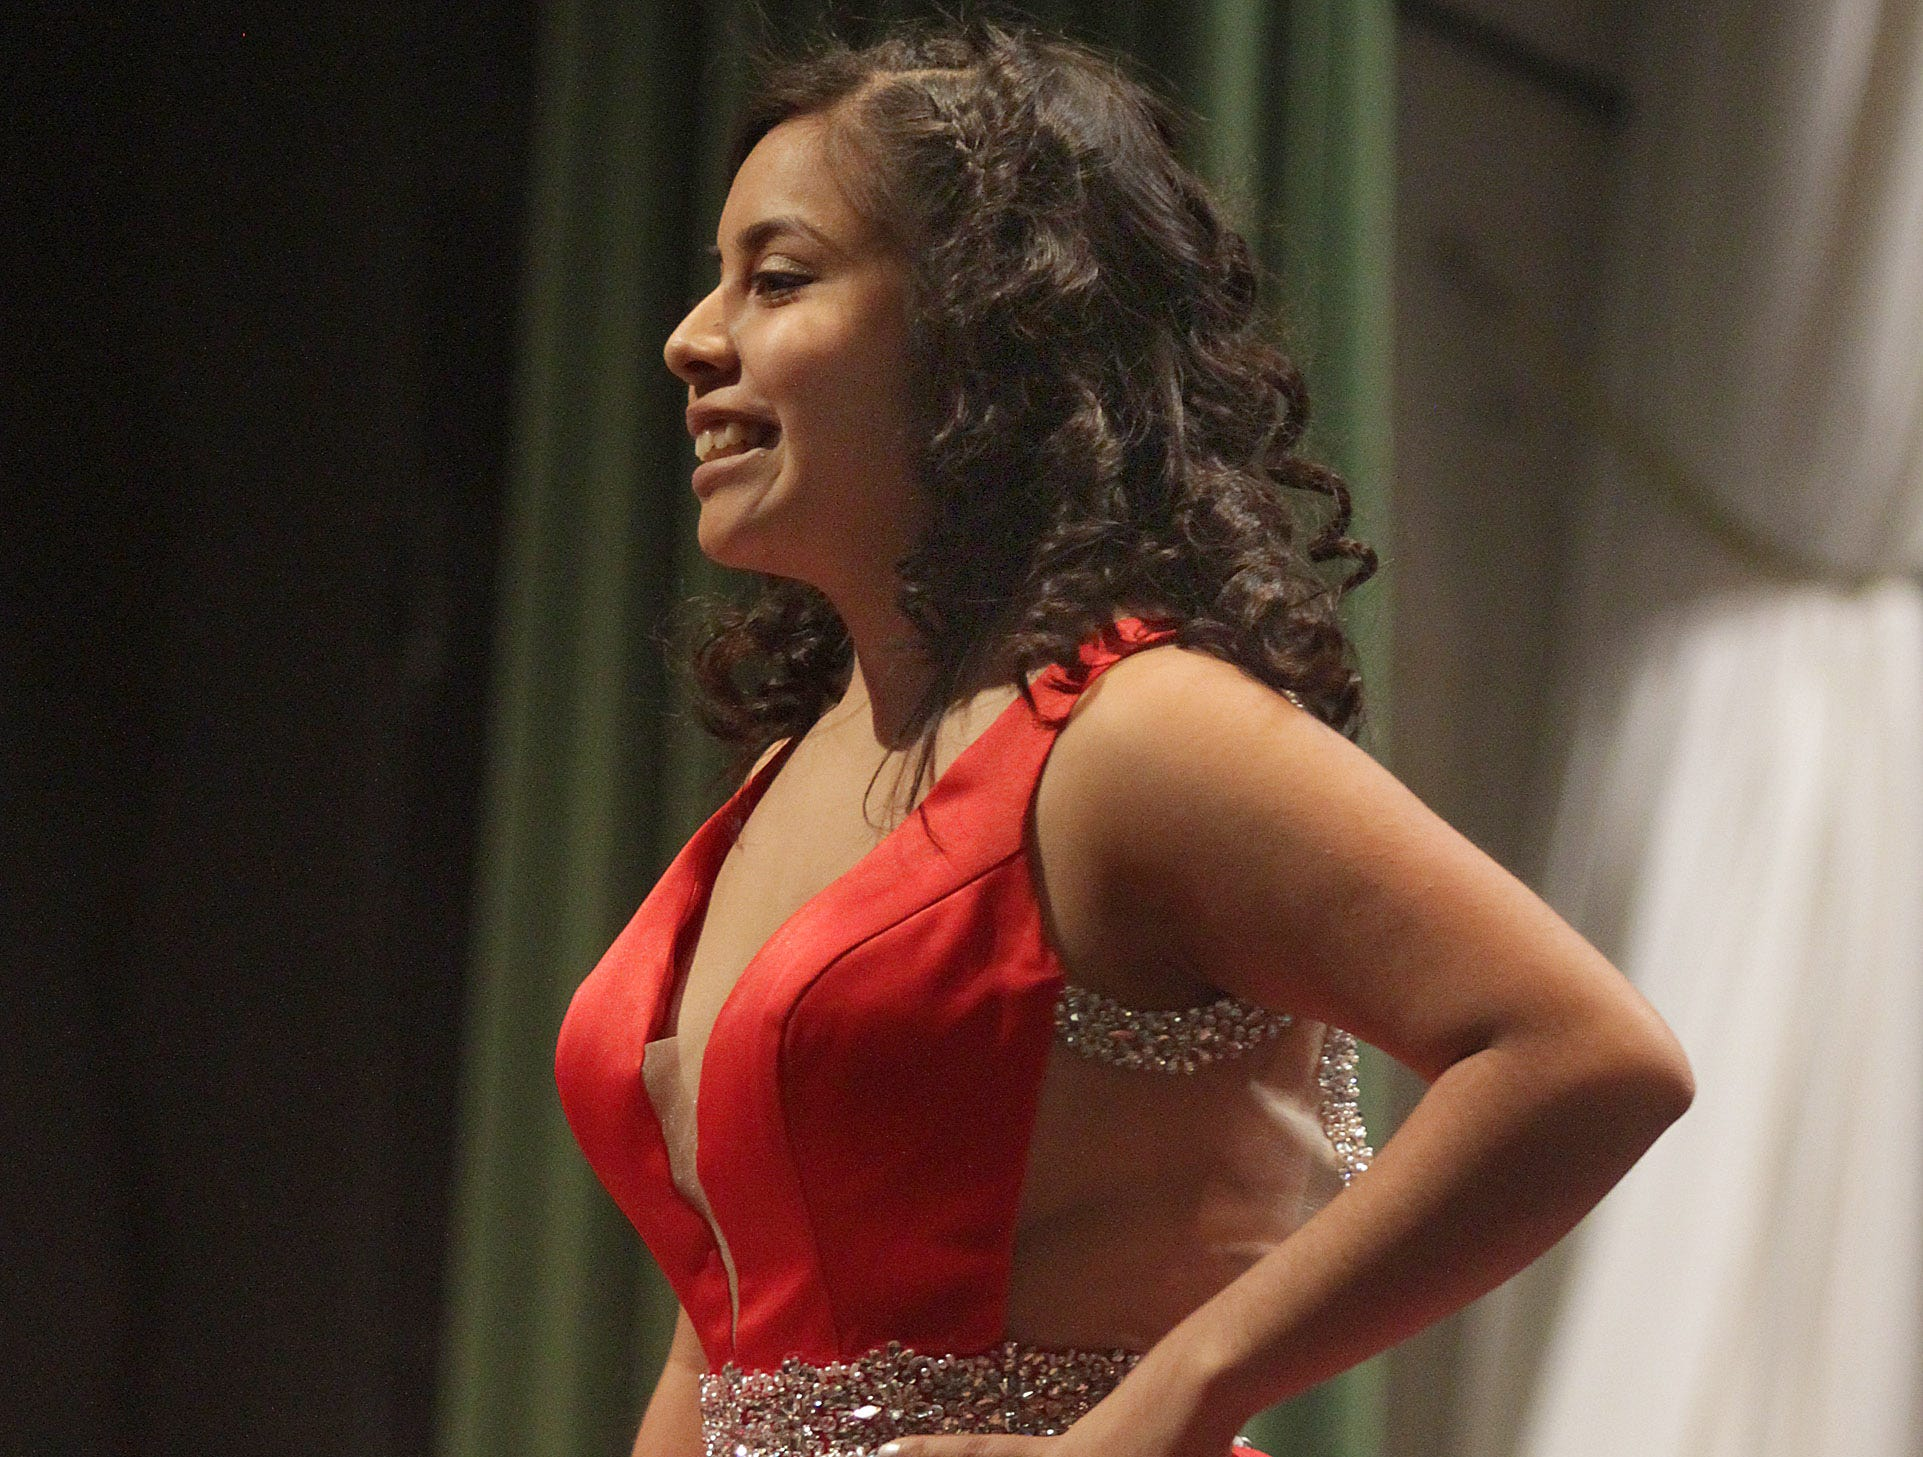 Rosa Gonzalez smiles on stage at Gallatin High's Annual Prom Show on Saturday, February 2, 2019.